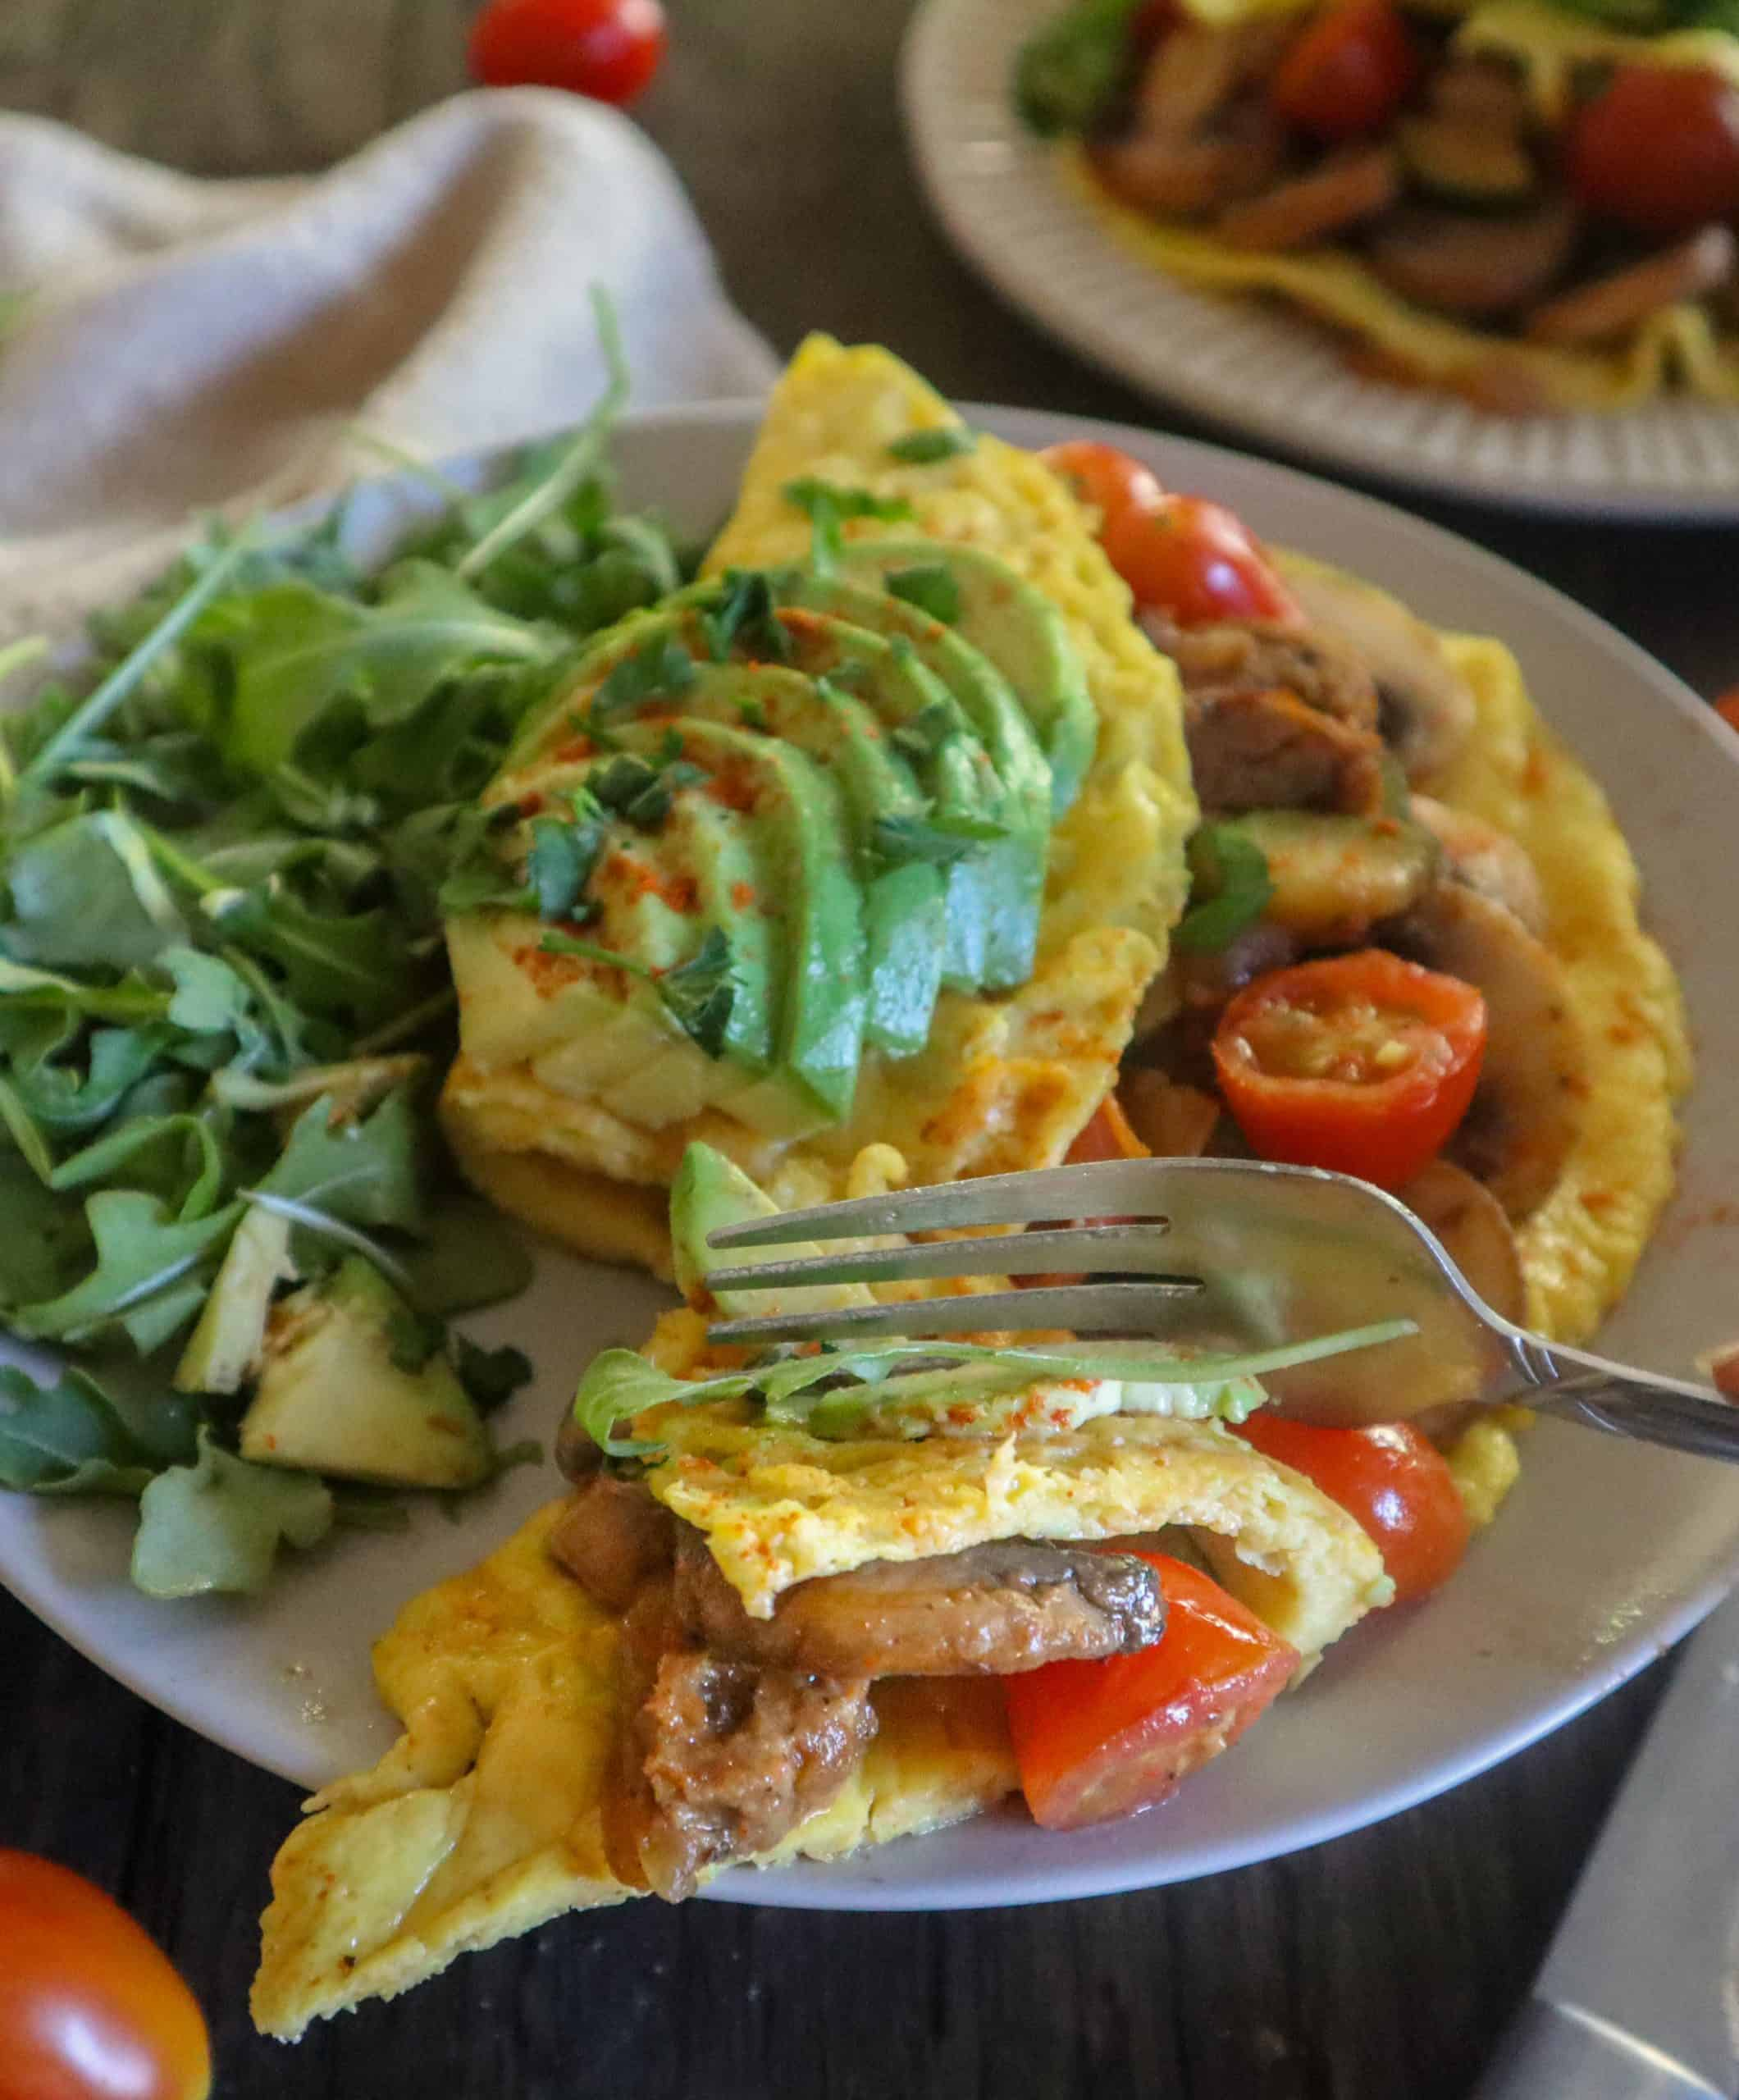 vegan omelette without chickpea flour